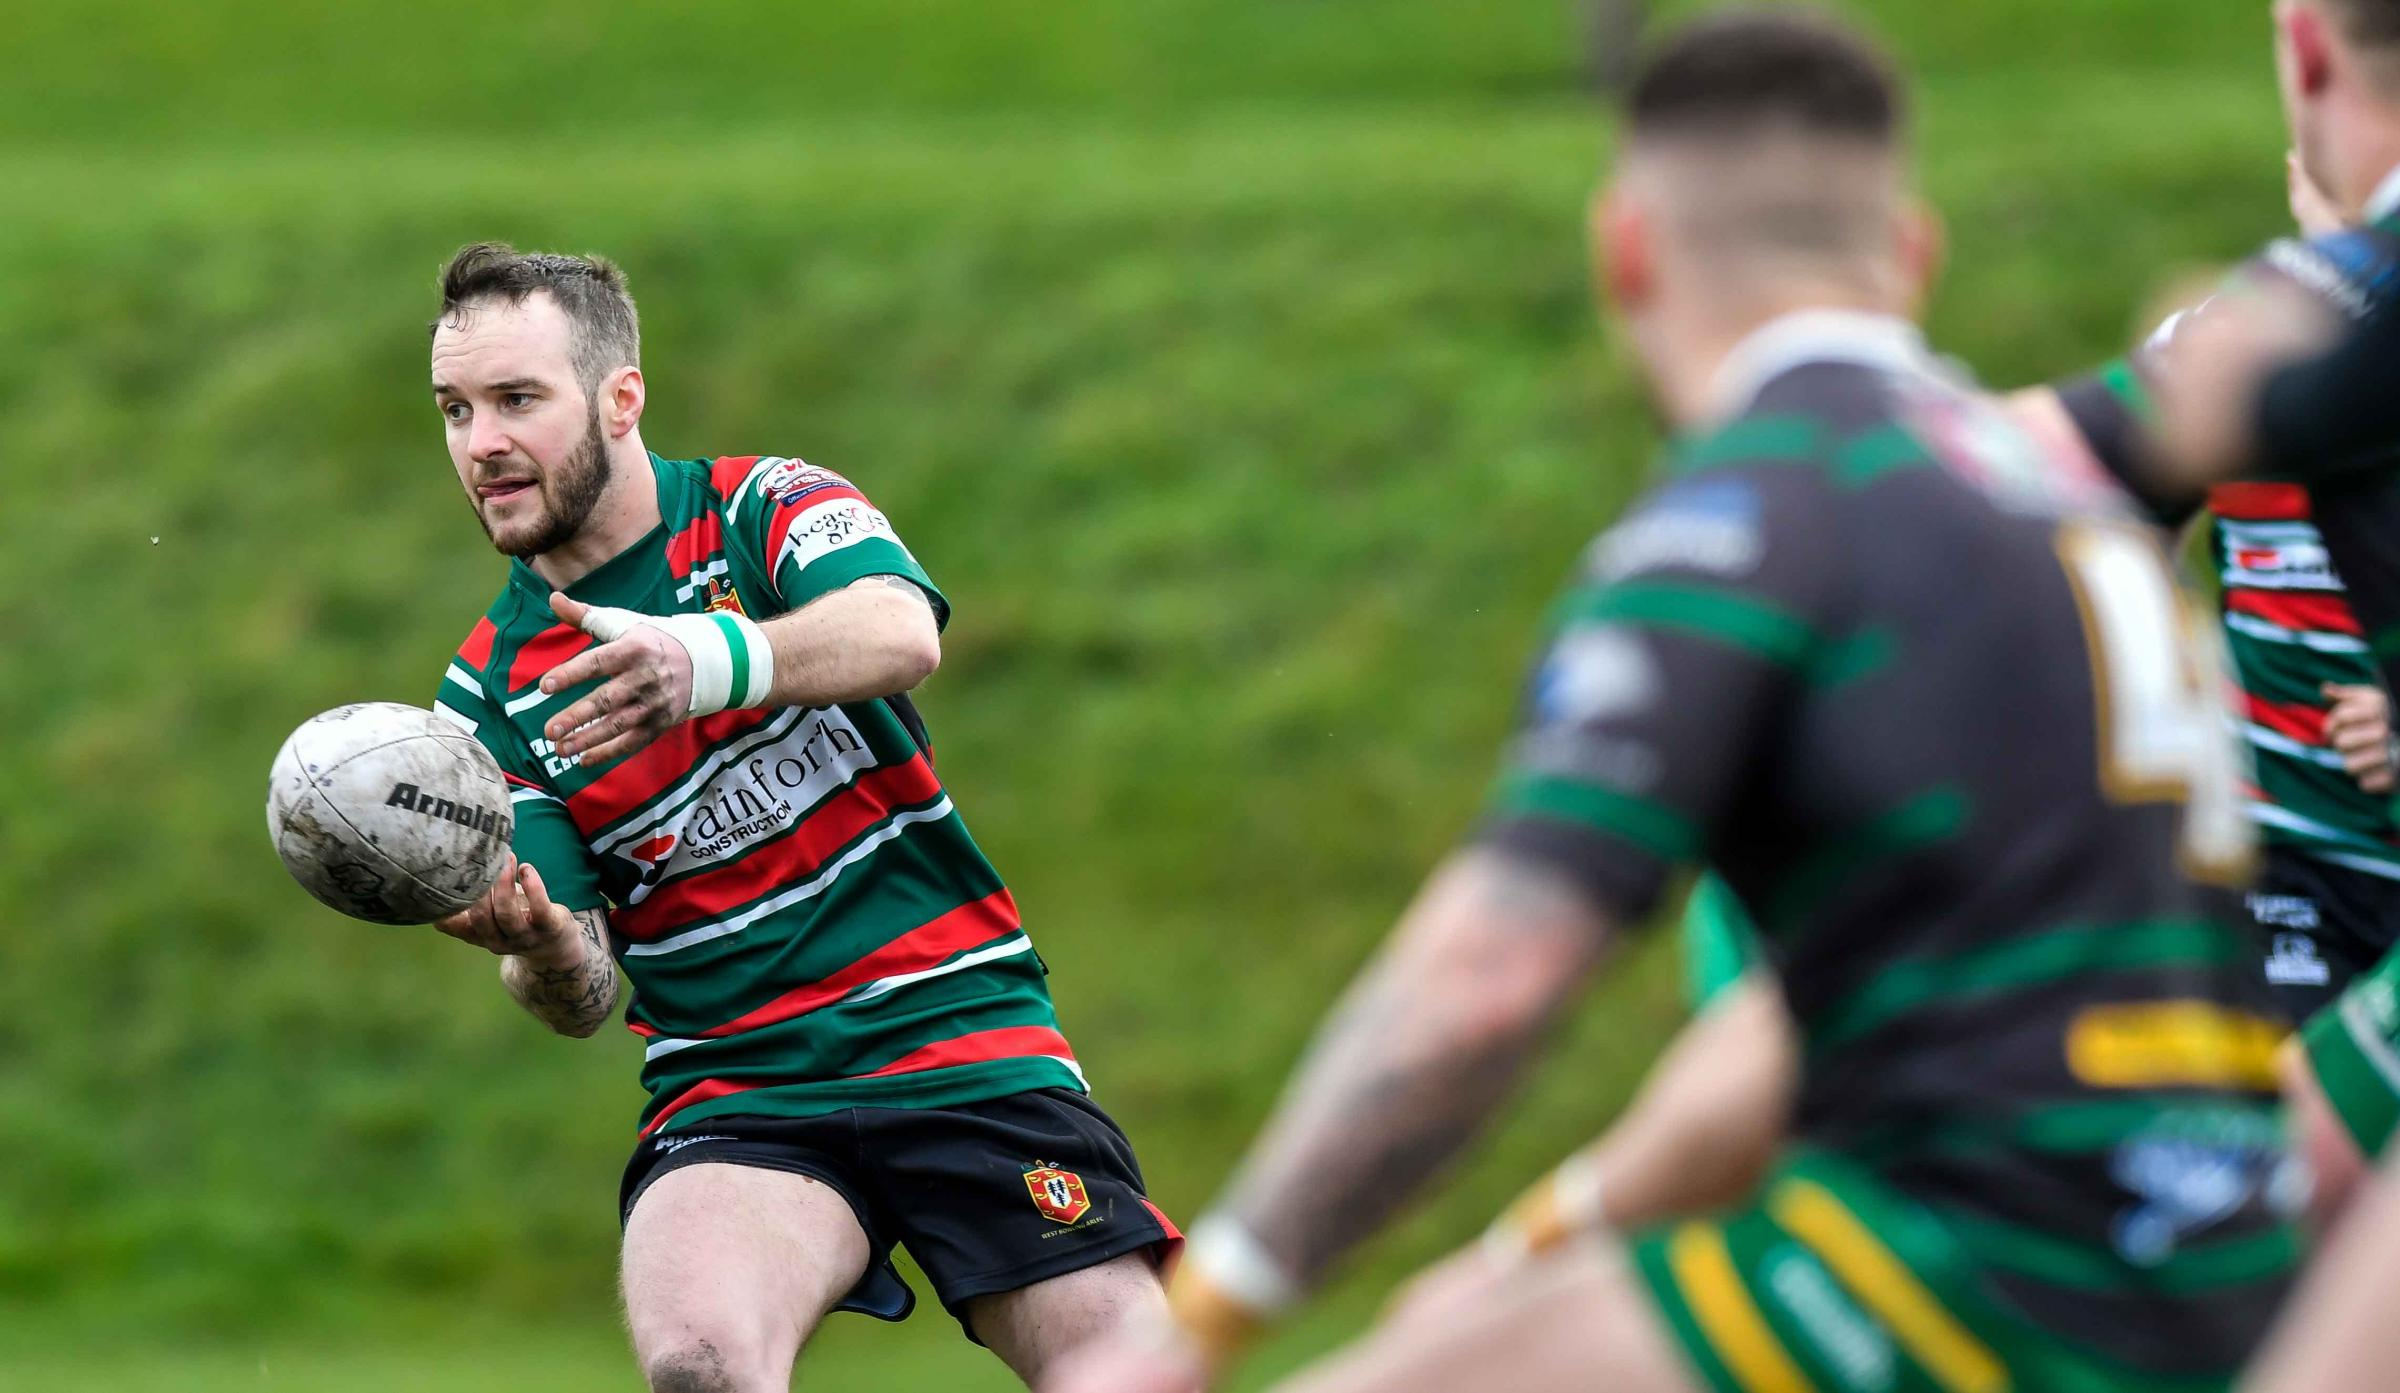 Liam Darville scored a try for West Bowling in their home defeat against Hull Dockers